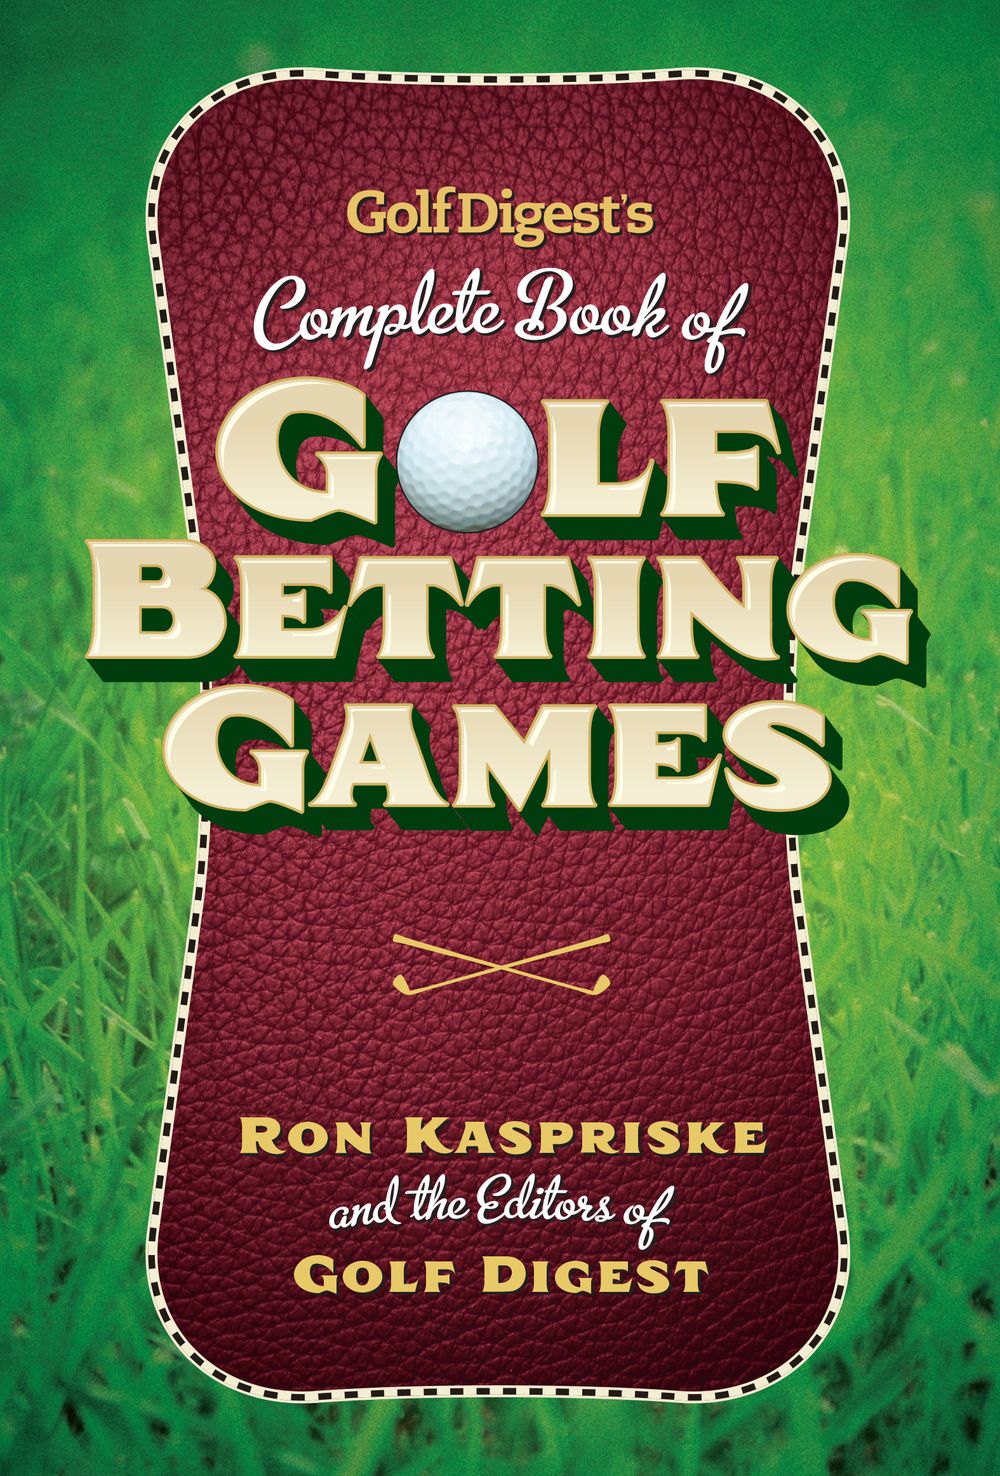 Golf Digest's Book of Golf Betting Games